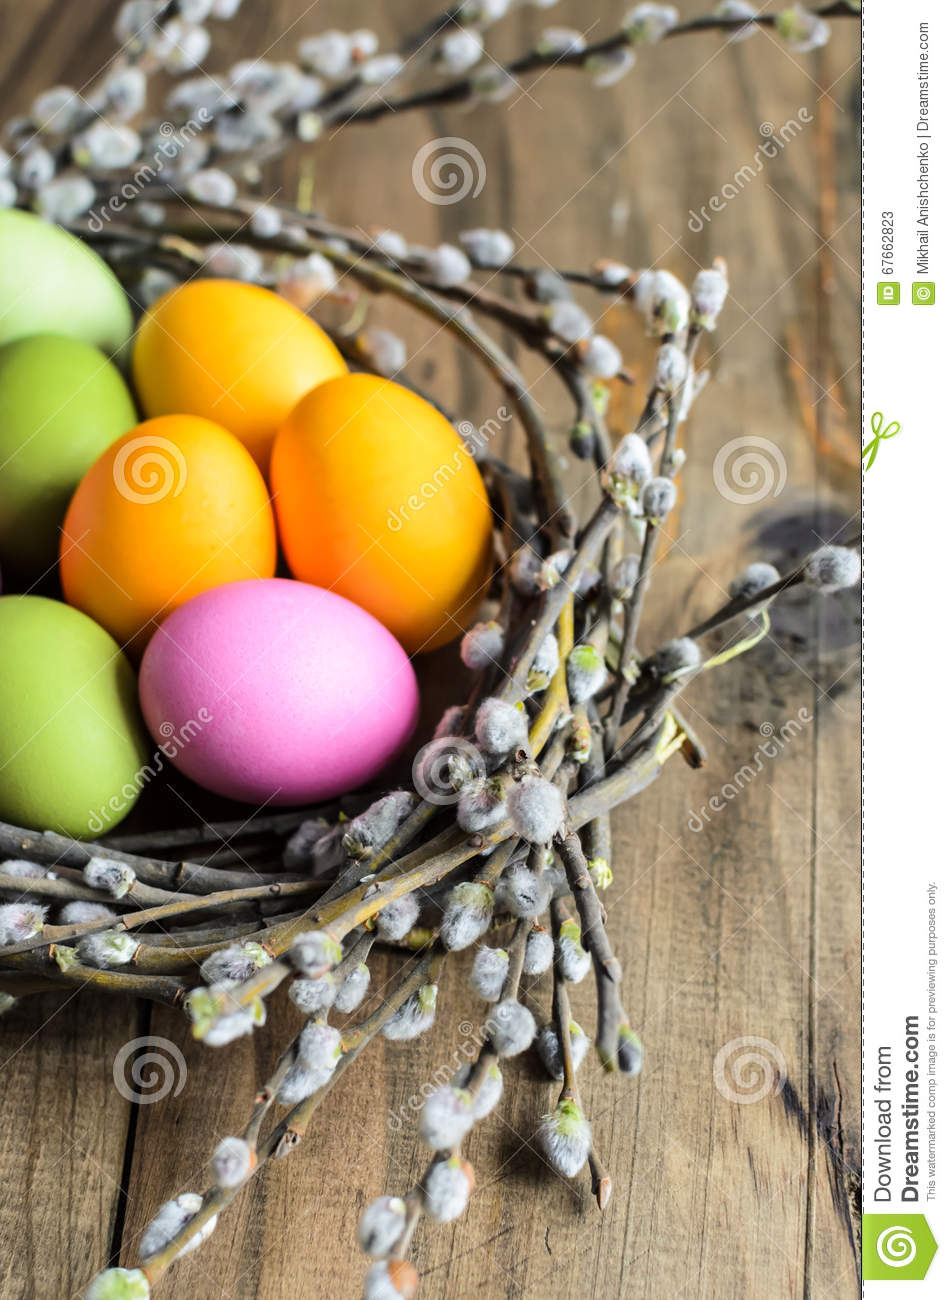 Easter Eggs In Willow Nest Flowers Over Wooden Rustic Background Stock Photo Image 67662823